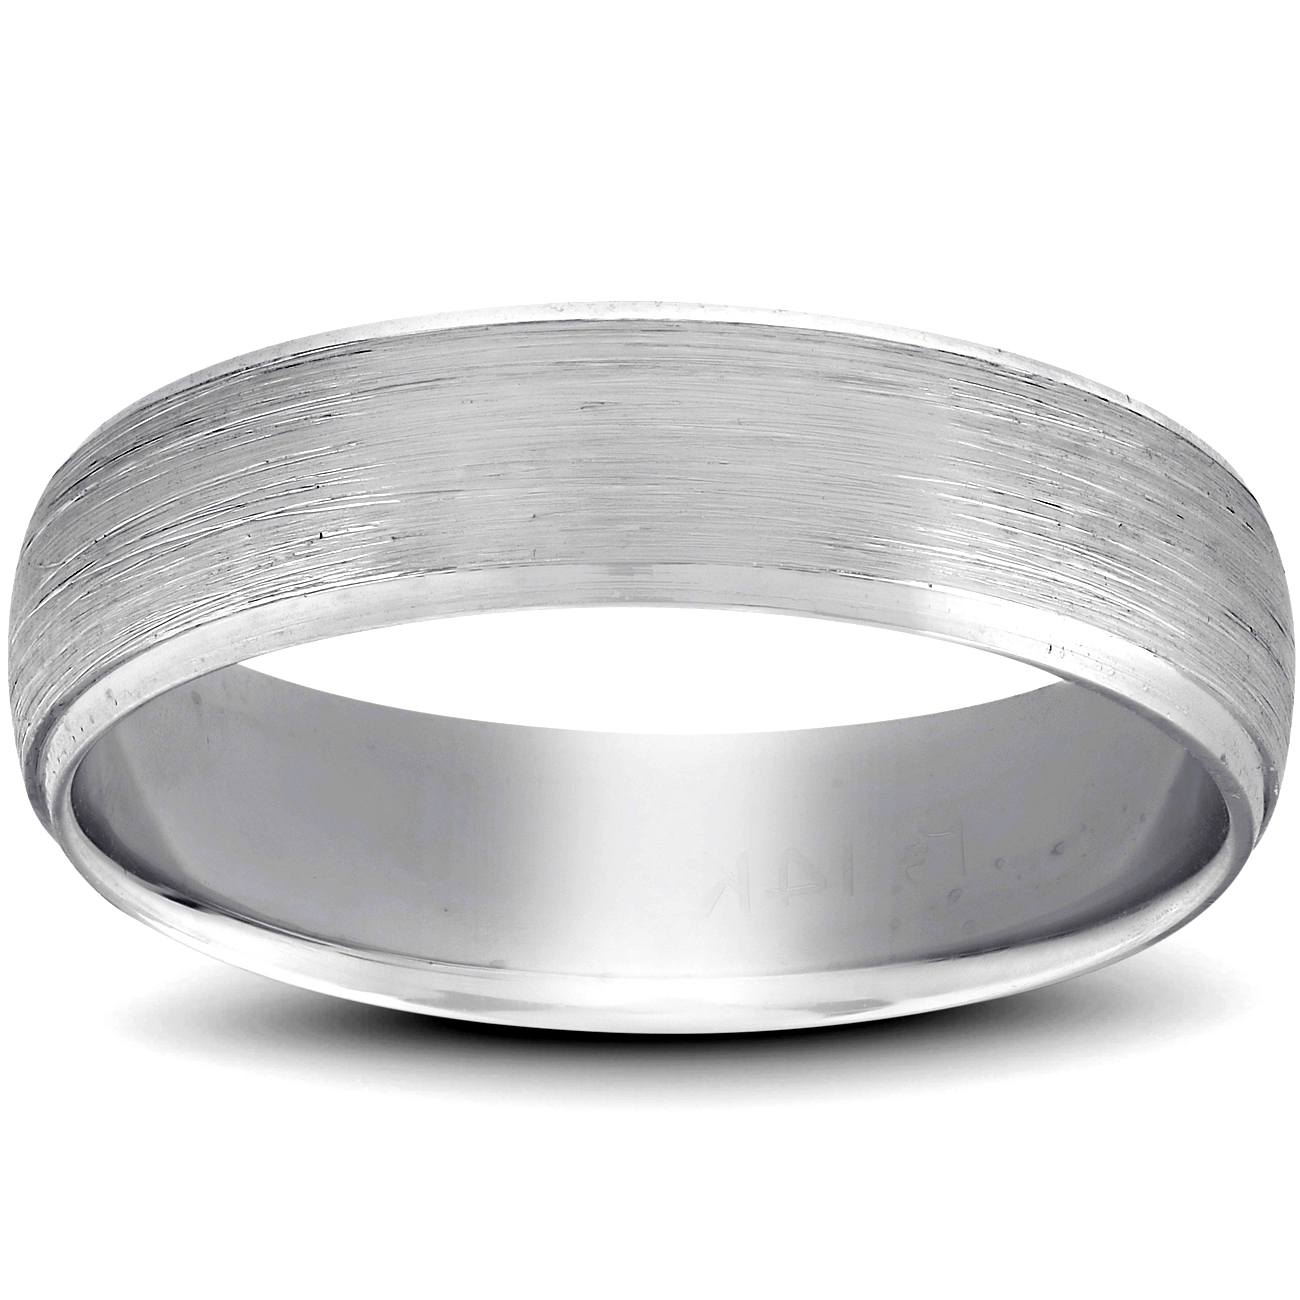 Details About Platinum Wedding Band Mens Brushed Beveled Ring 6mm Polished Edges: Beveled Edge Matte Wedding Ring At Reisefeber.org